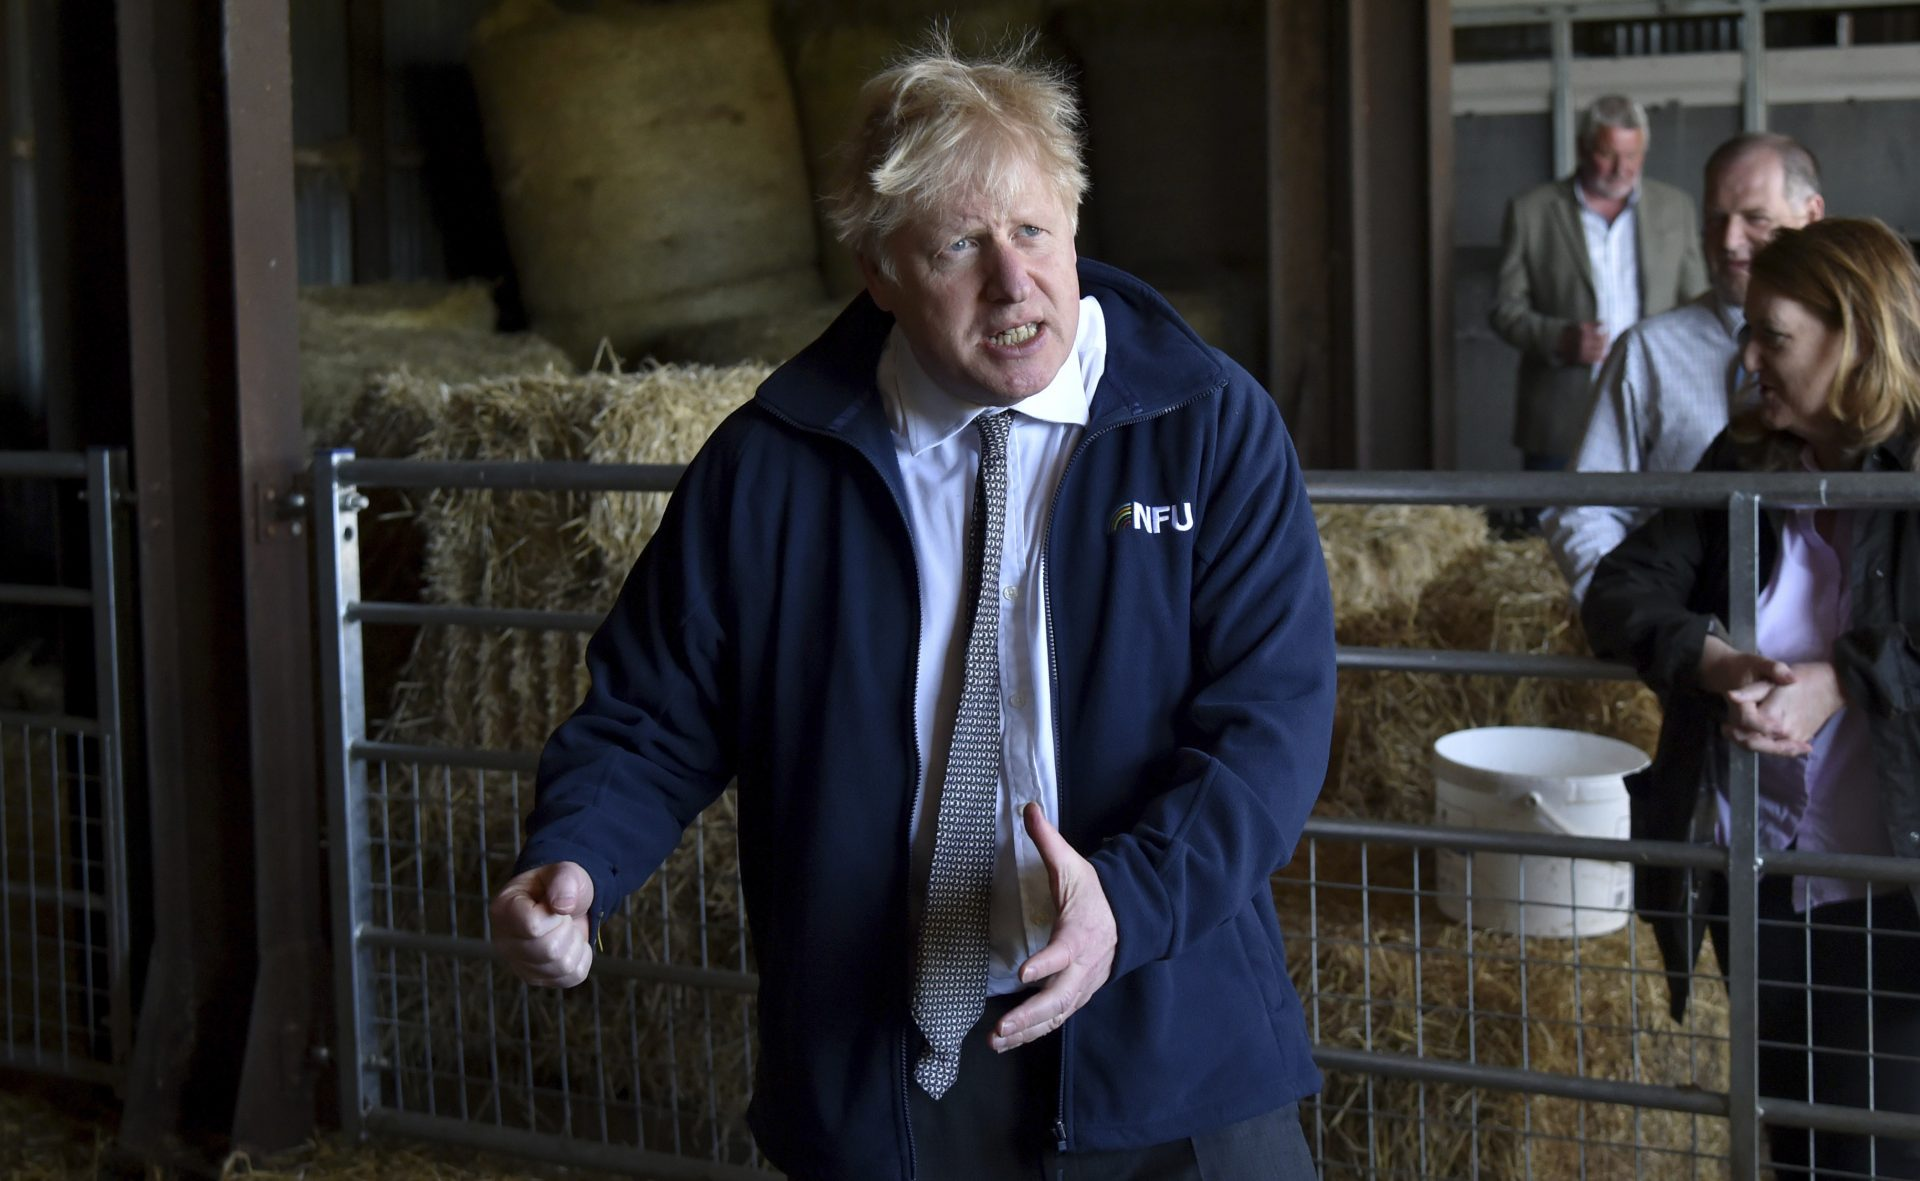 Prime Minister Boris Johnson during a visit to the Moor Farm in Stoney Middleton, north Derbyshire. Photograph: PA.